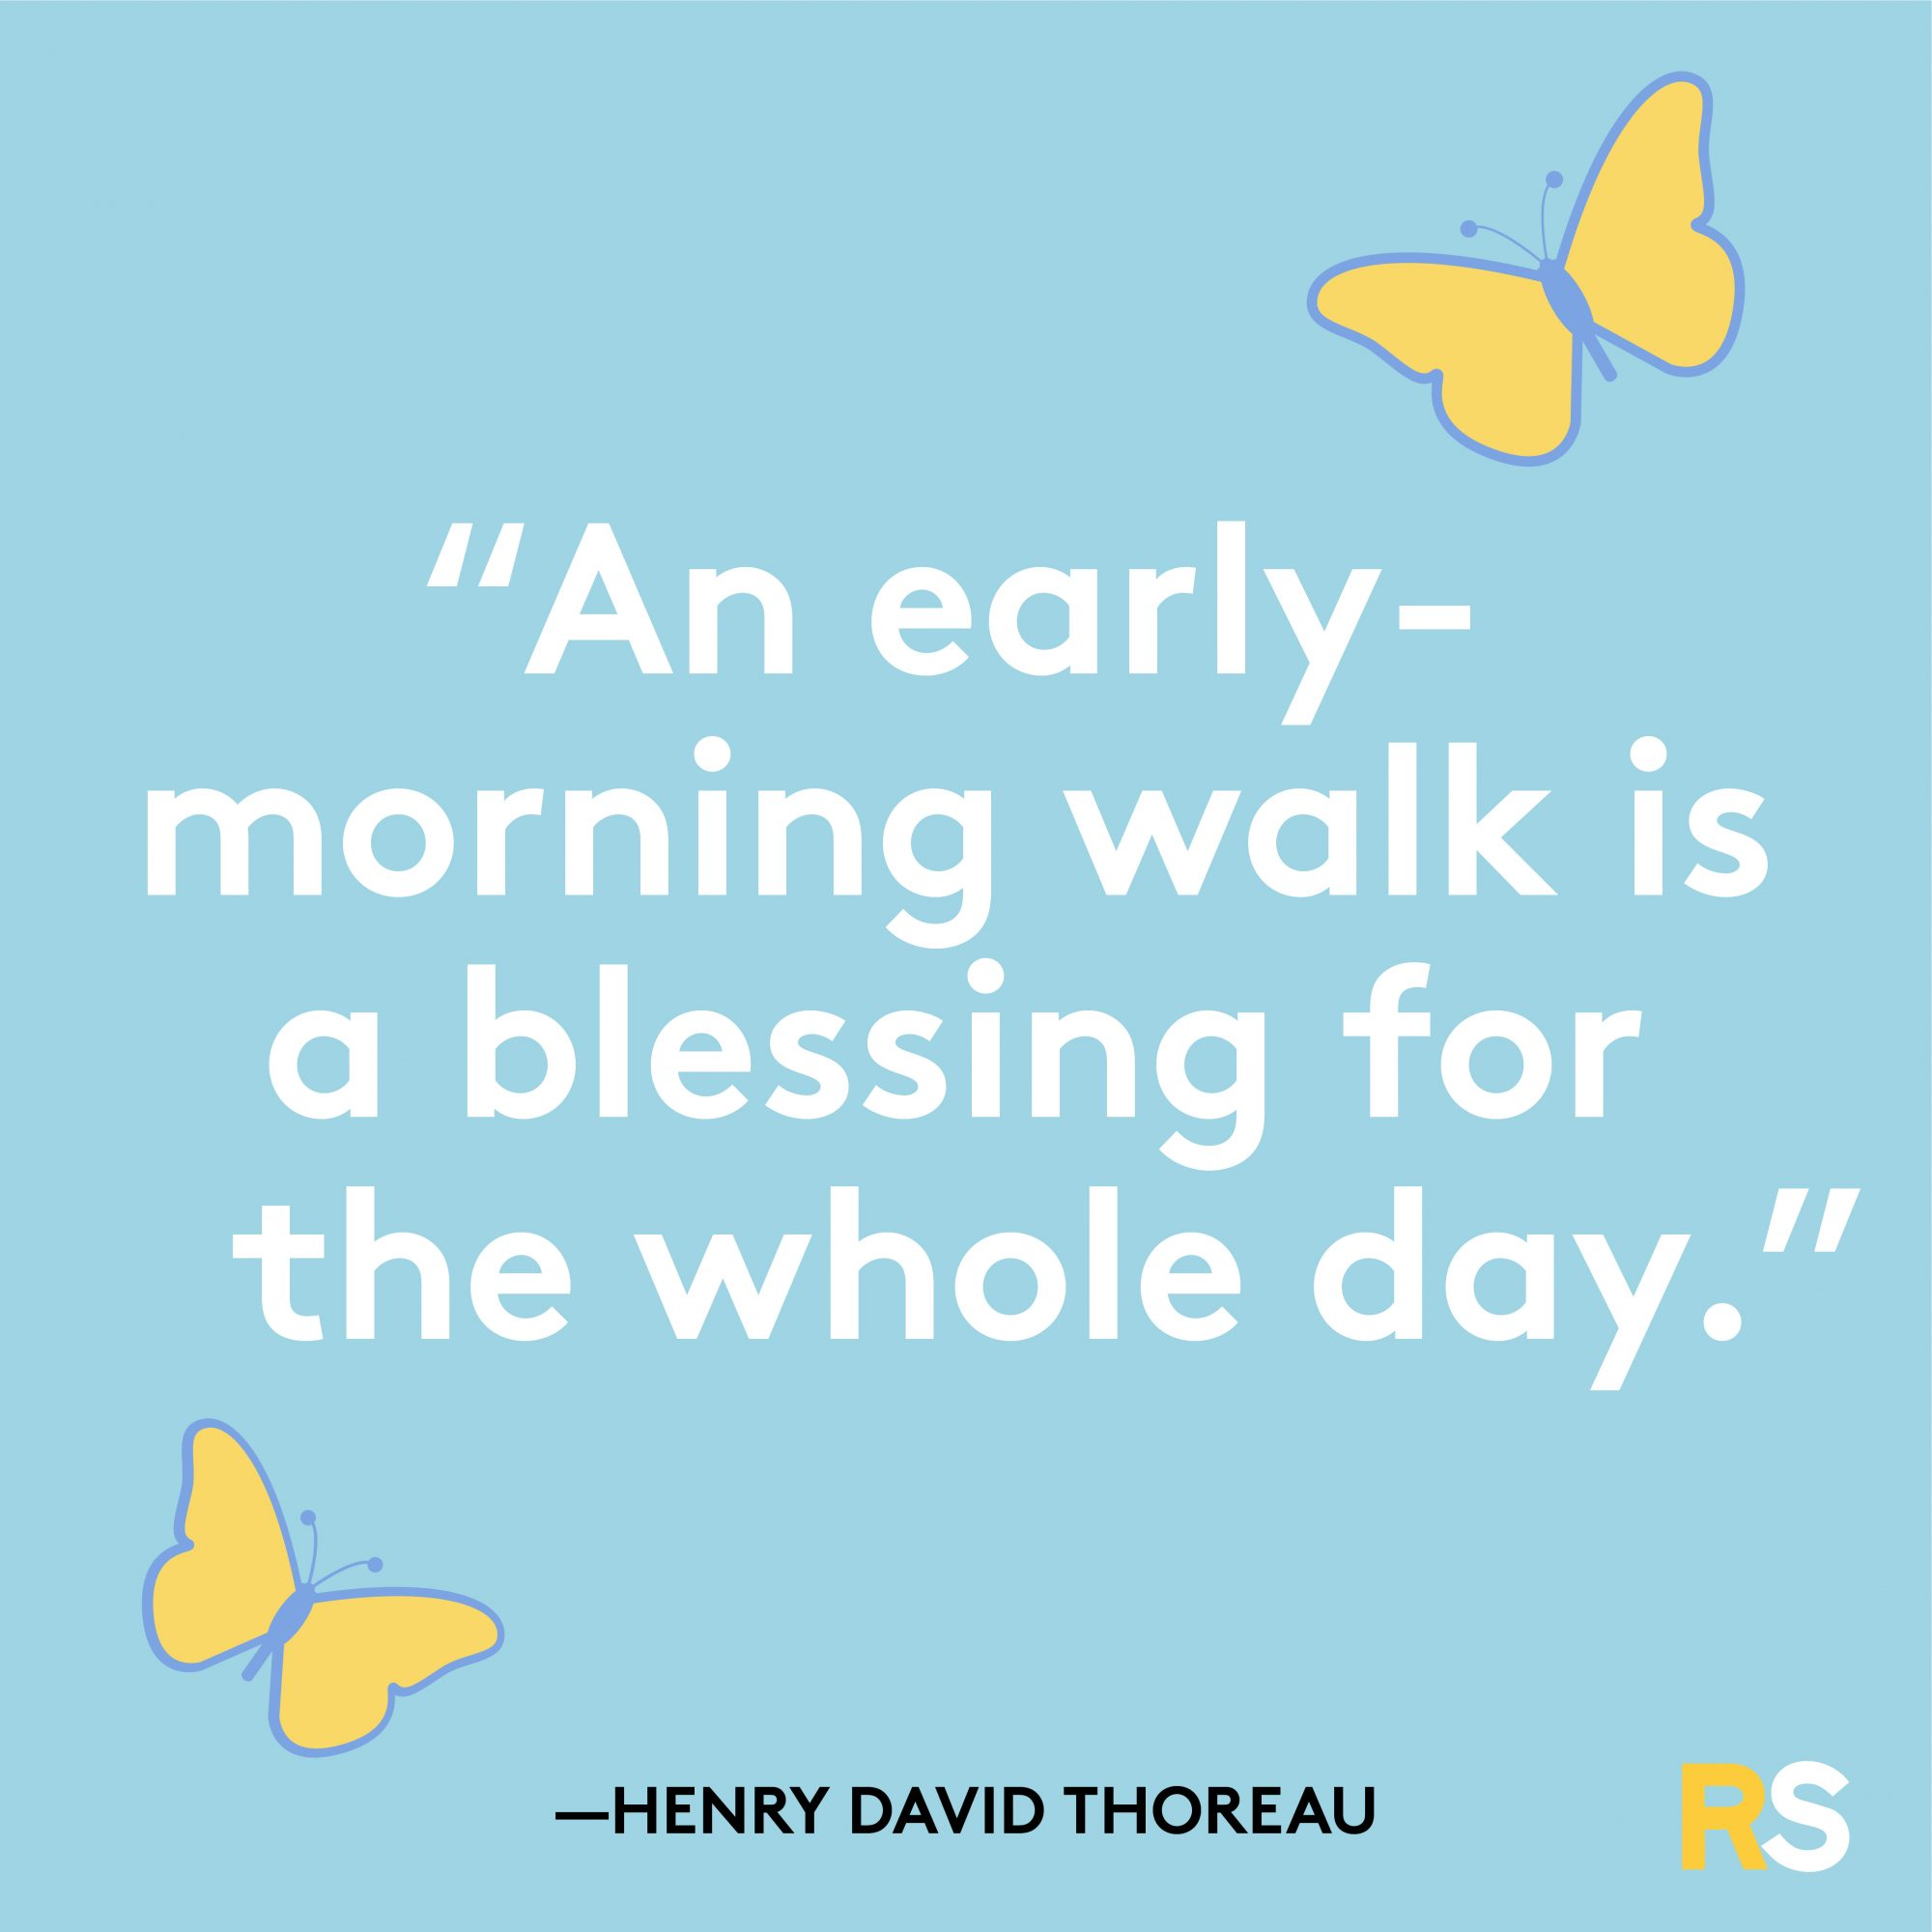 Early Morning Walk Is a Blessing Quote by Henry David Thoreau